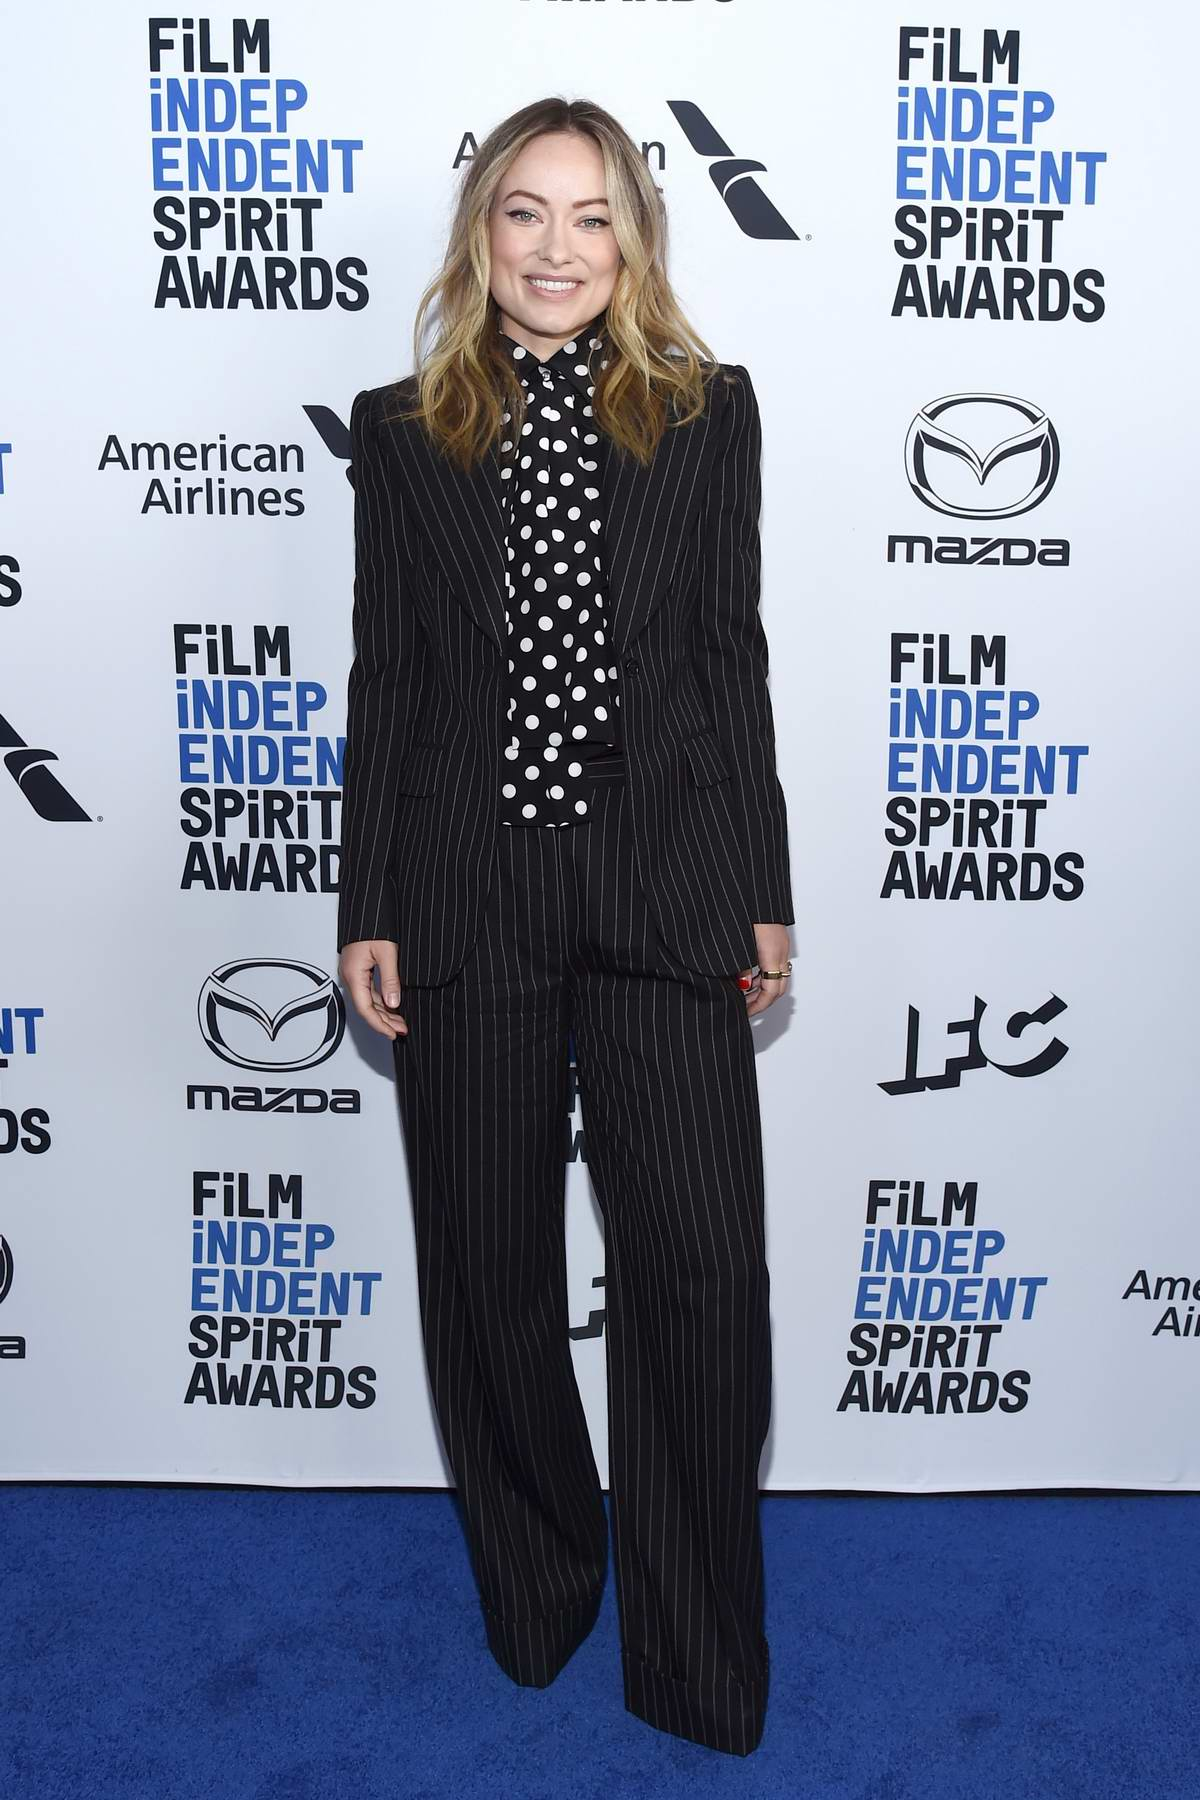 Olivia Wilde attends the 2020 Film Independent Spirit Awards Nominees Brunch in West Hollywood, California